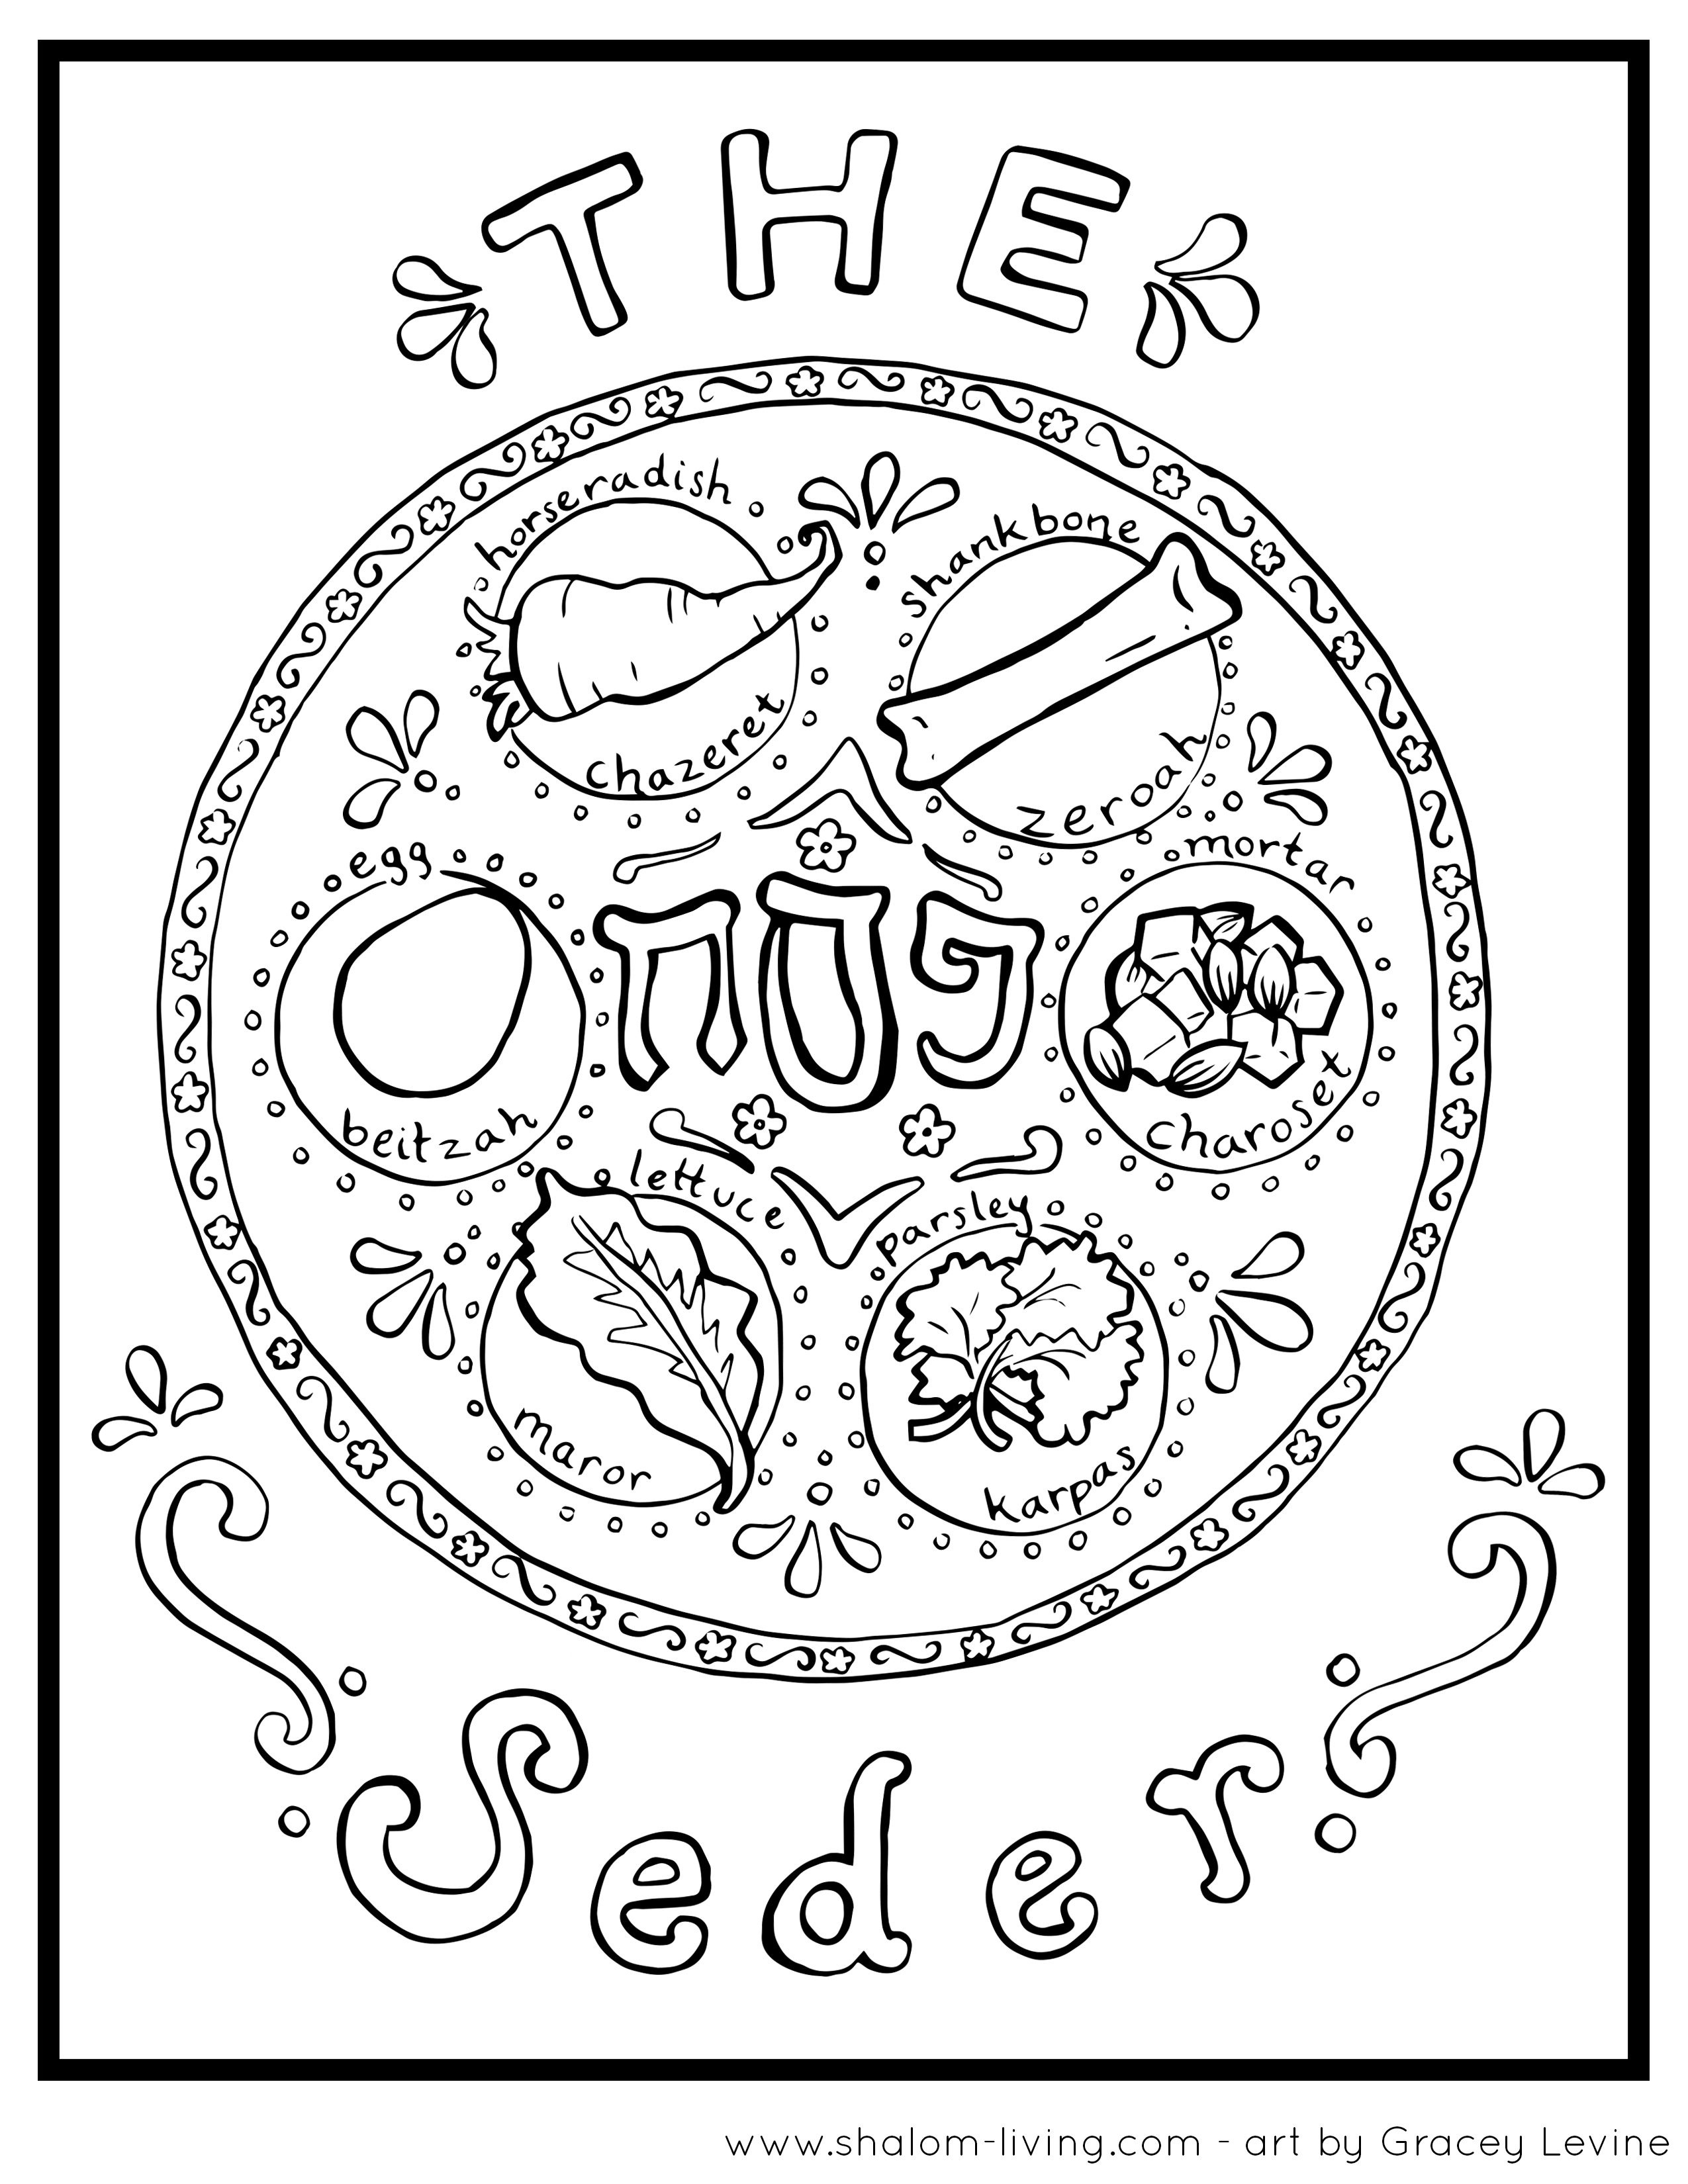 Passover Seder Plate Coloring Page Passover Coloring Page | Holy Day - Free Printable Messianic Haggadah